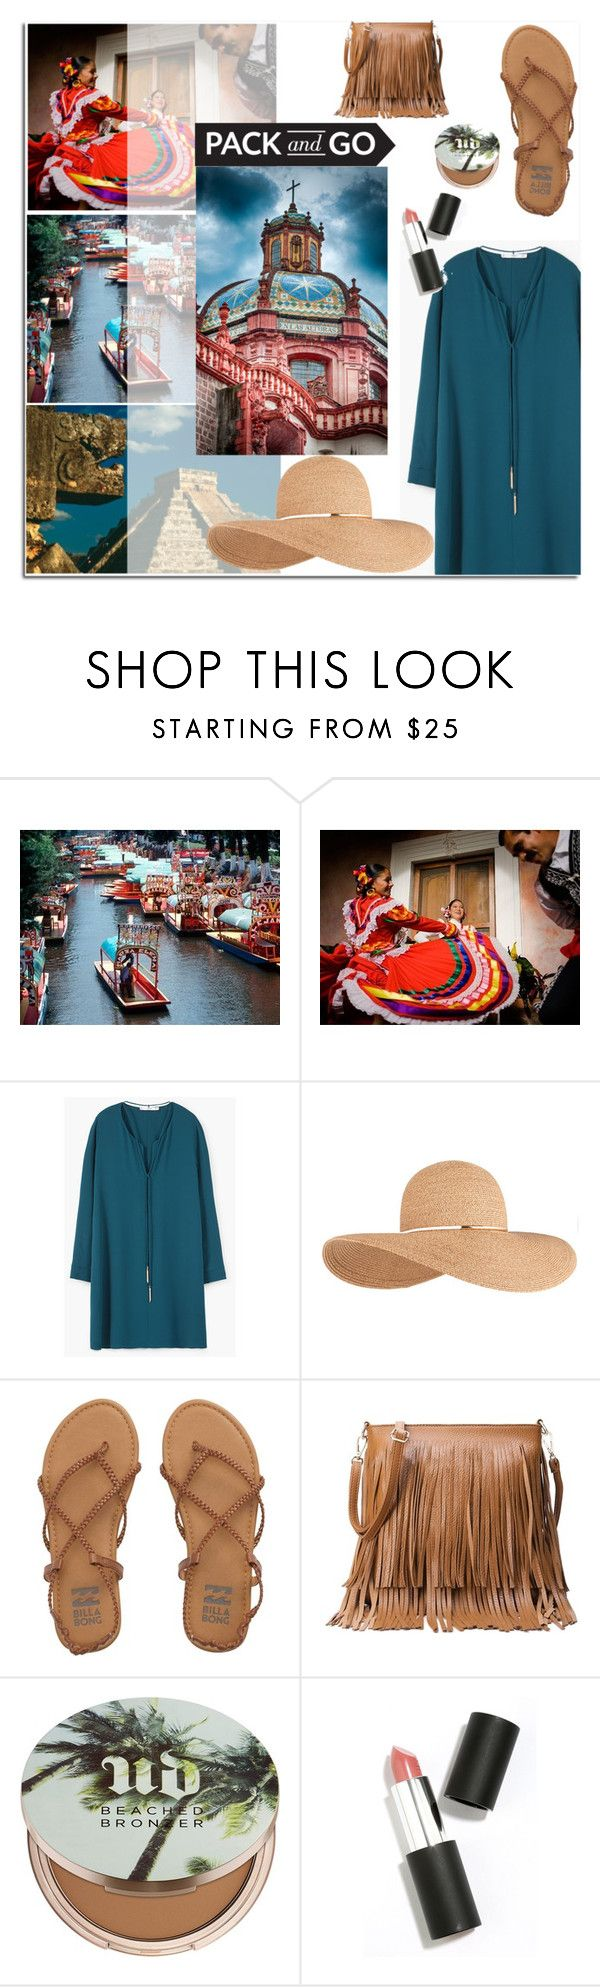 """mexico"" by sofia050400 ❤ liked on Polyvore featuring MANGO, Eugenia Kim, Billabong, Urban Decay and Sigma Beauty"